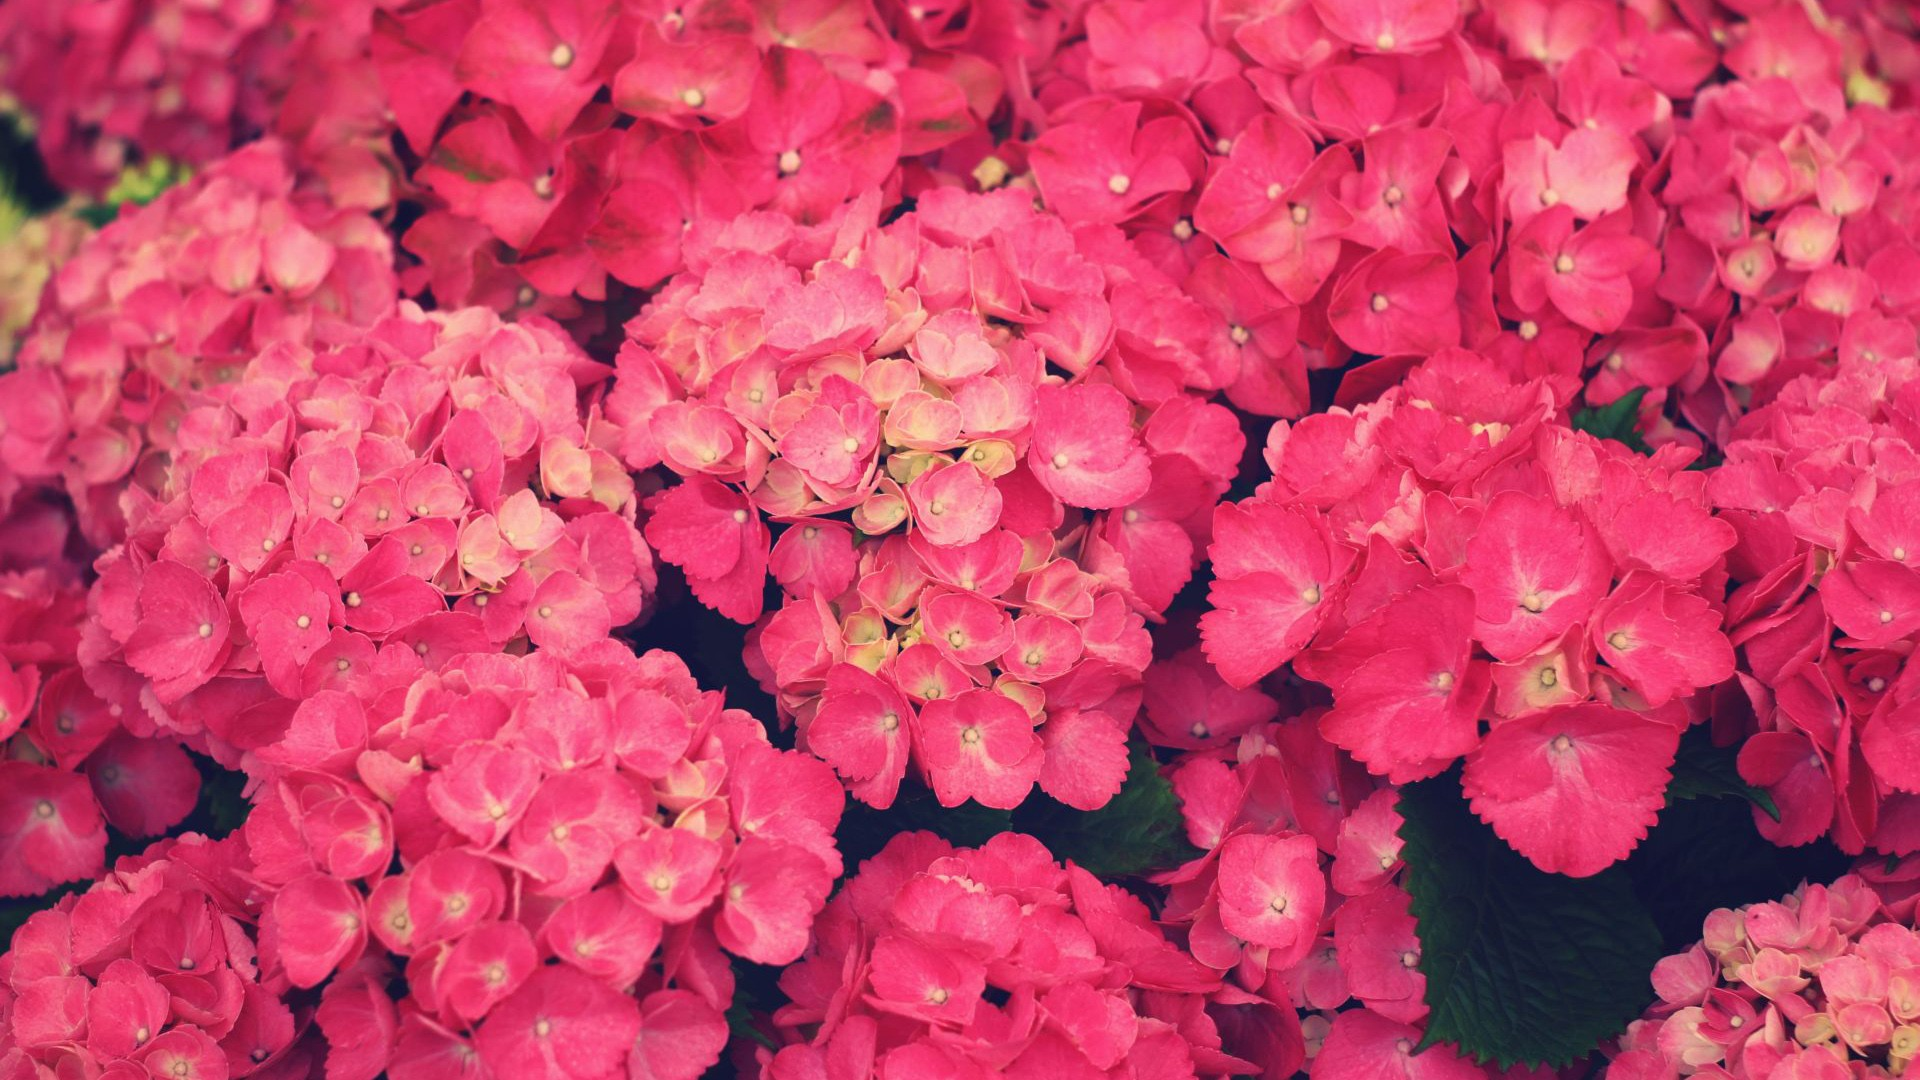 Pink flowers 19308 1920x1080 px hdwallsource pink flowers 19308 mightylinksfo Gallery